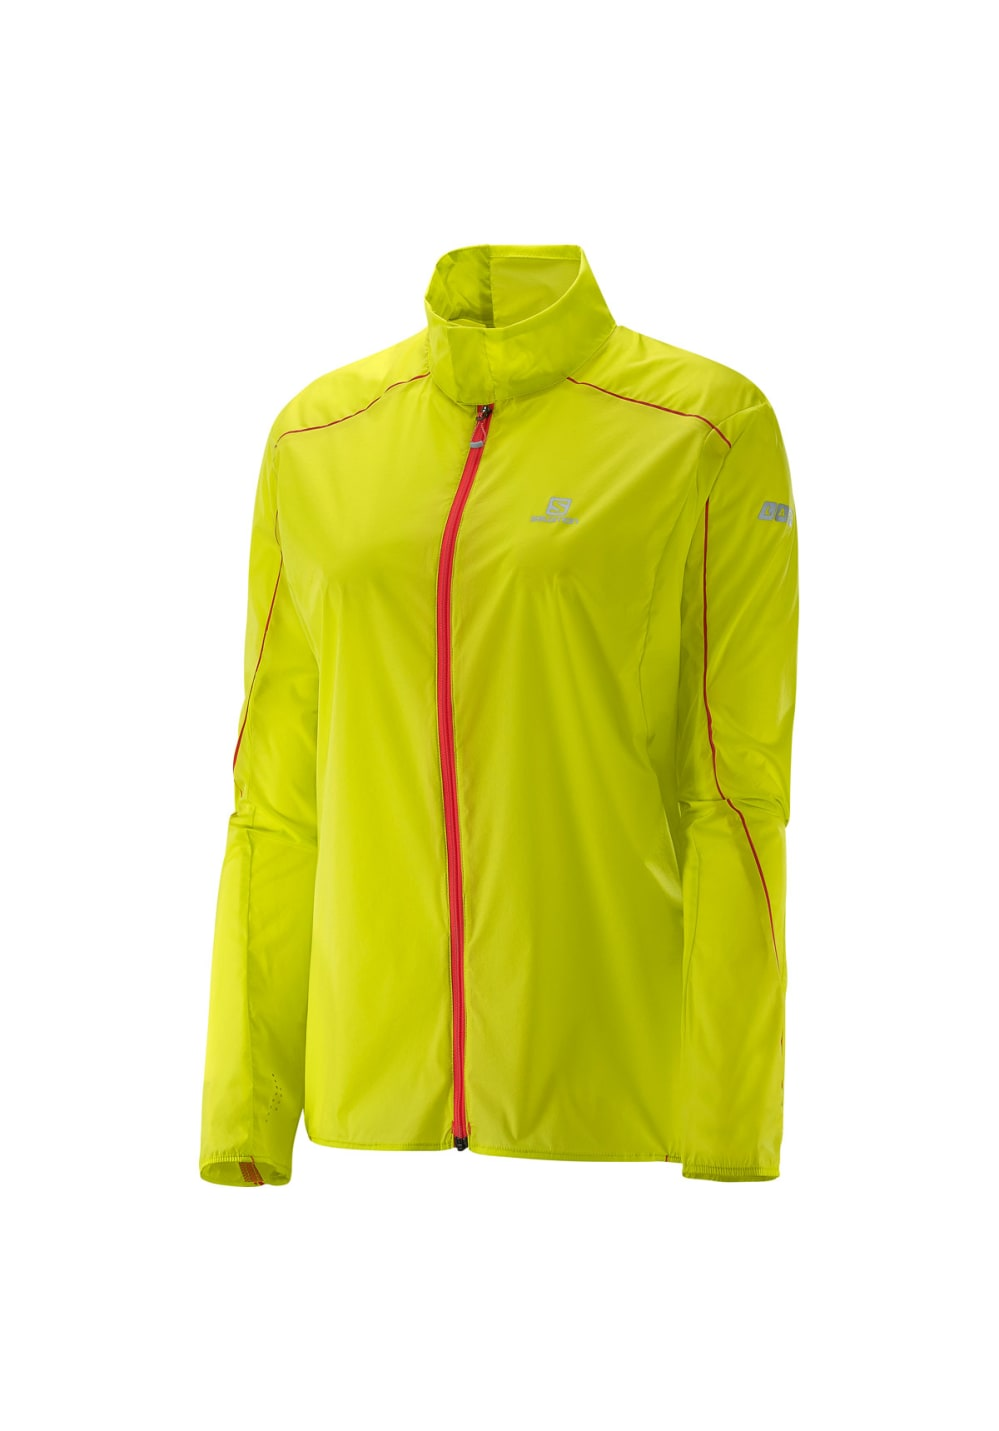 1e7eeb68f Salomon S-Lab Light Jacket - Running jackets for Women - Green | 21RUN